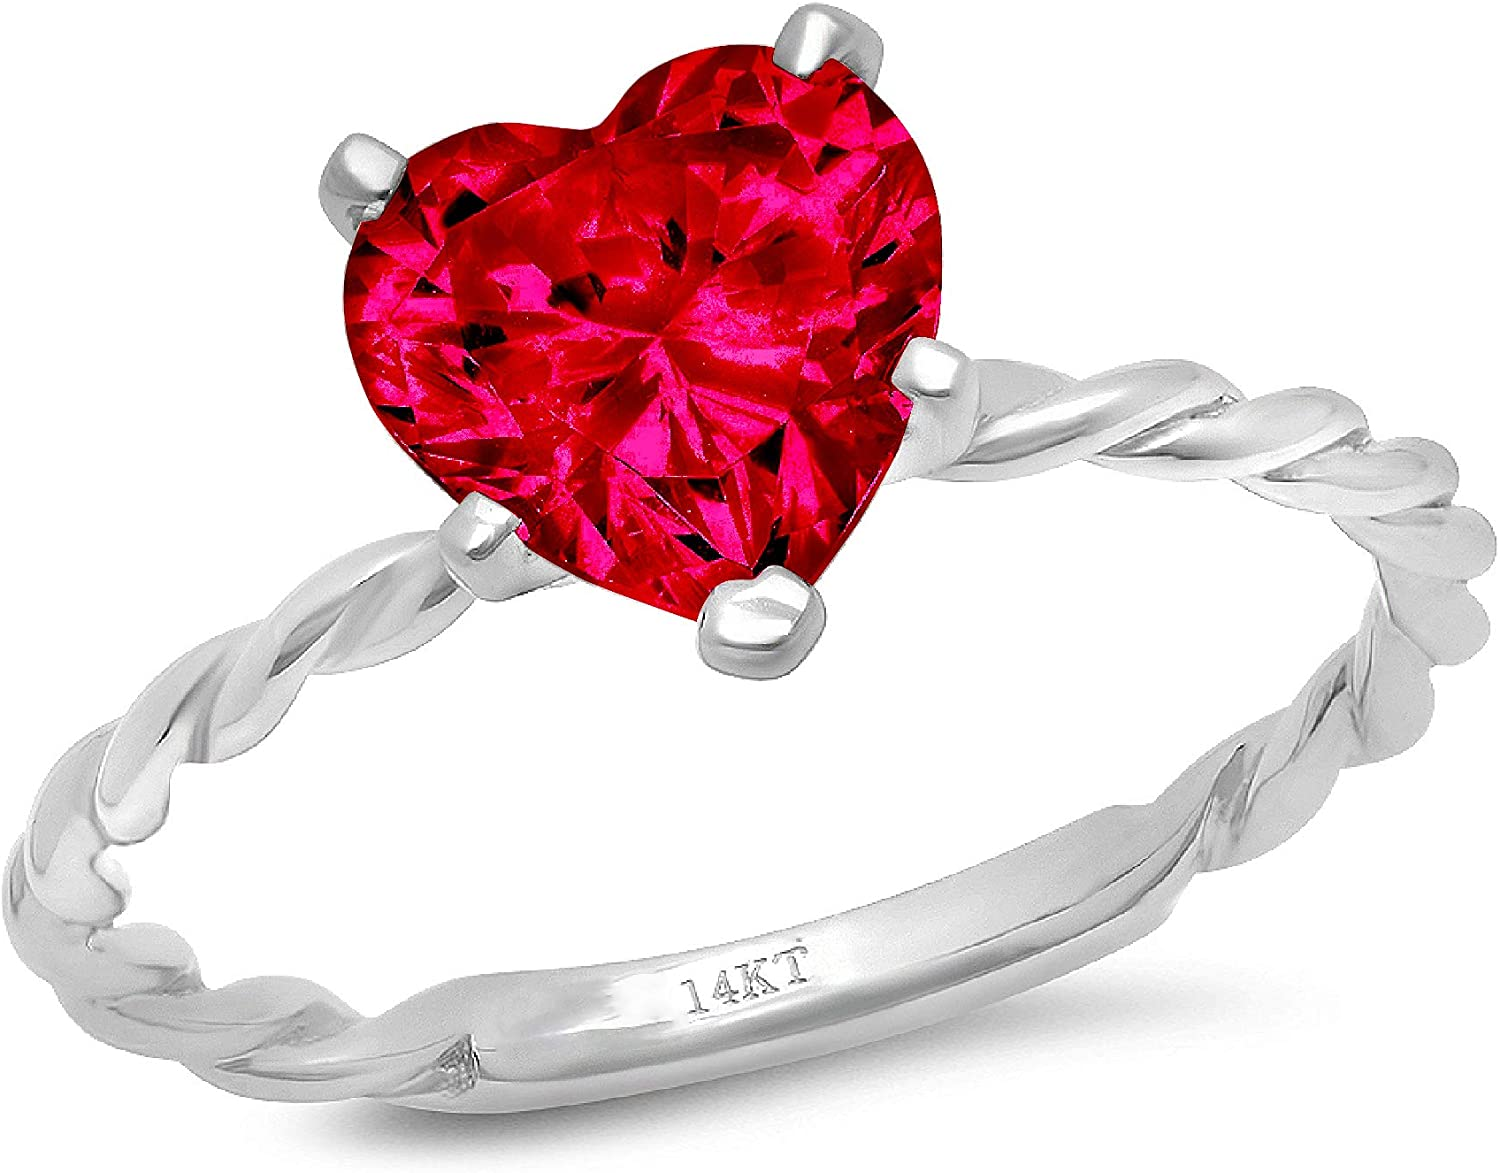 1.9ct Brilliant Heart Cut Solitaire Rope Twisted Knot Flawless Simulated CZ Red Ruby Ideal VVS1 5-Prong Engagement Wedding Bridal Promise Anniversary Designer Ring Solid 14k White Gold for Women